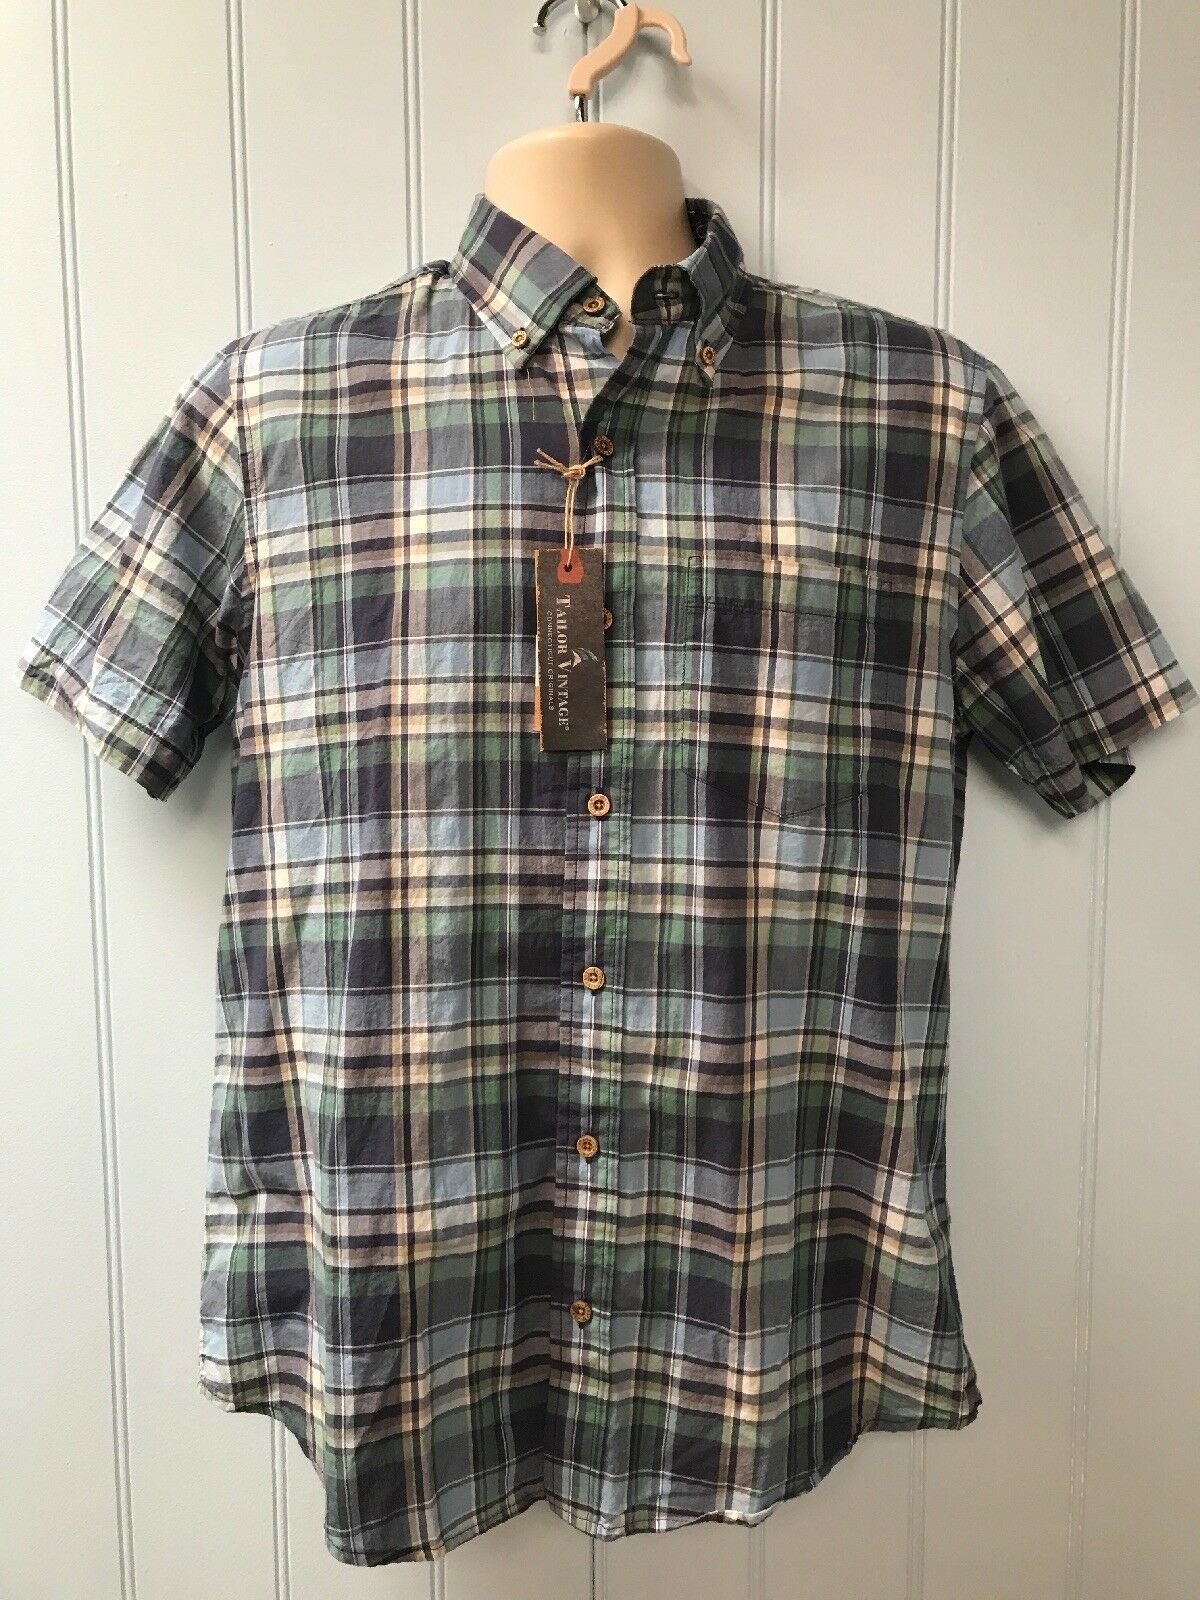 NWT  Tailor Vintage Short Sleeve Button Front Plaid Casual Shirt Size S